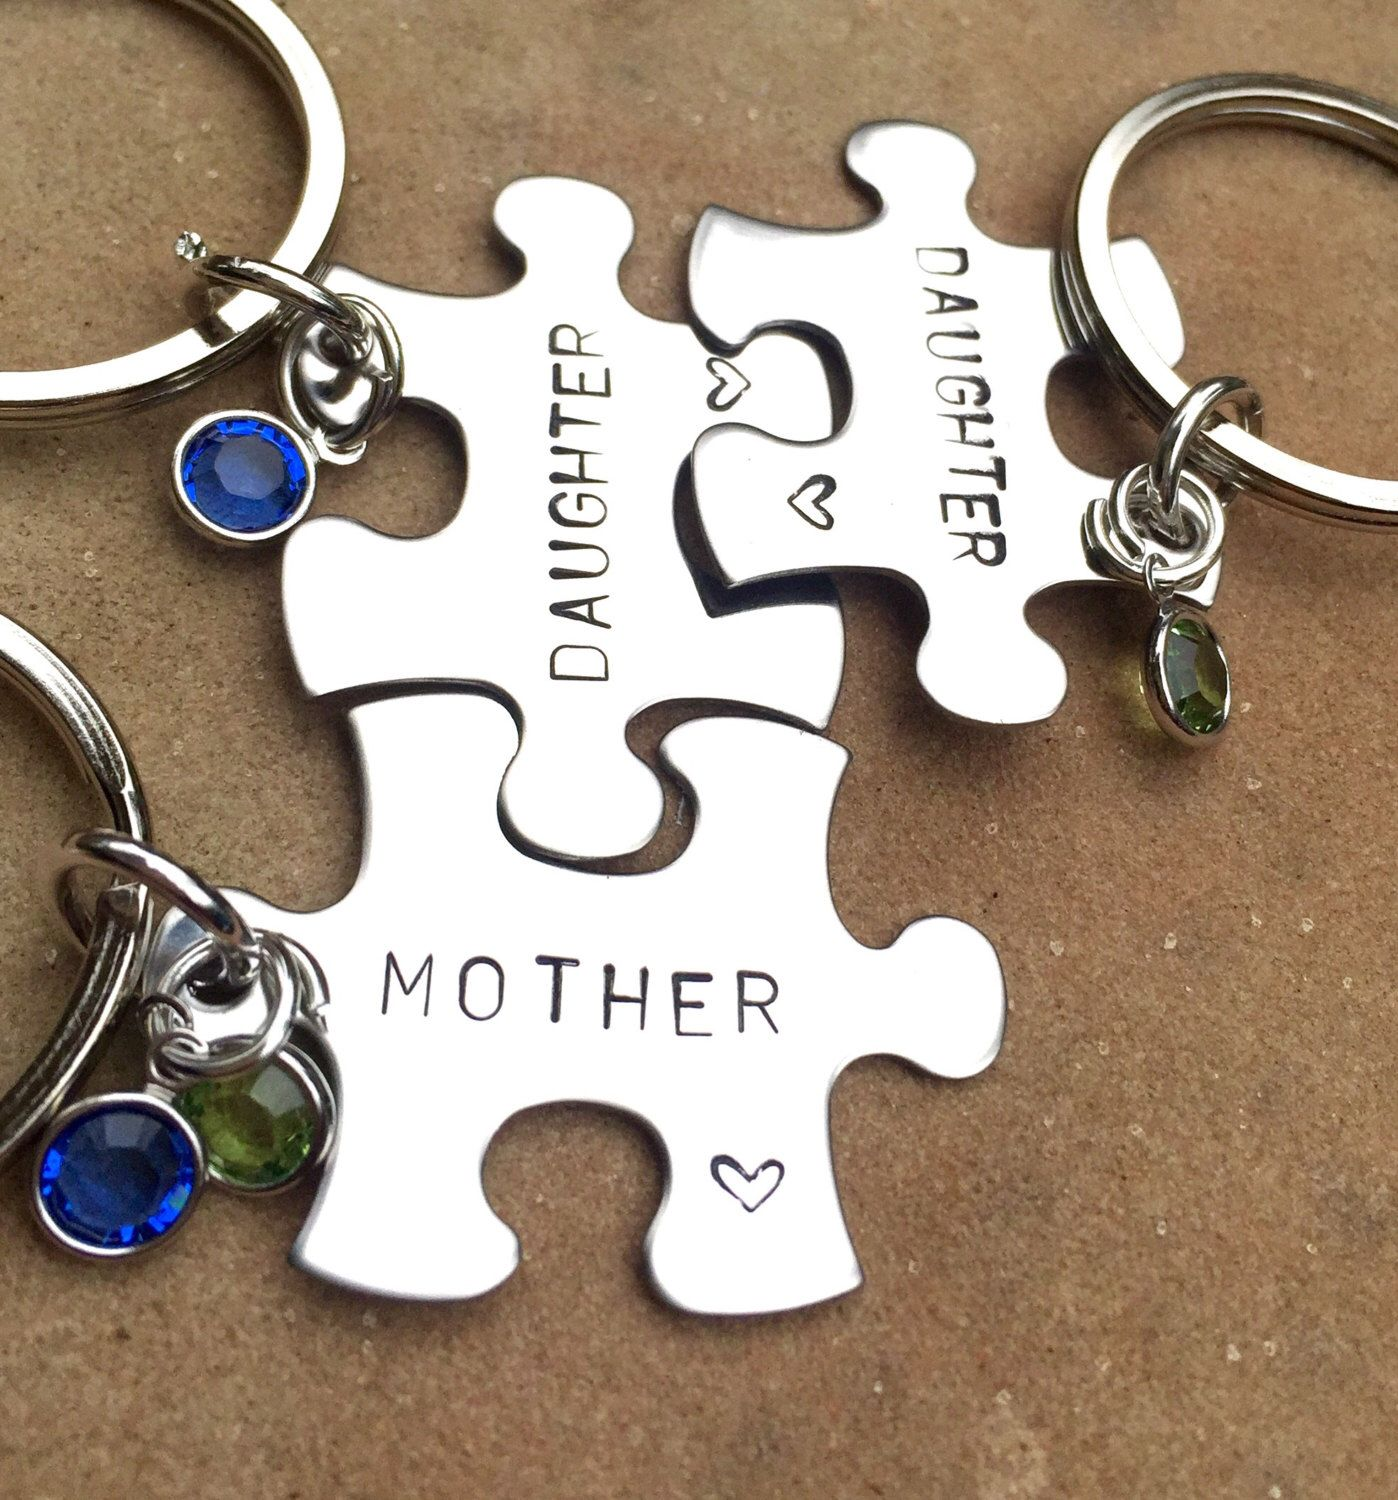 Mother daughter gifts mothers day gifts puzzle key